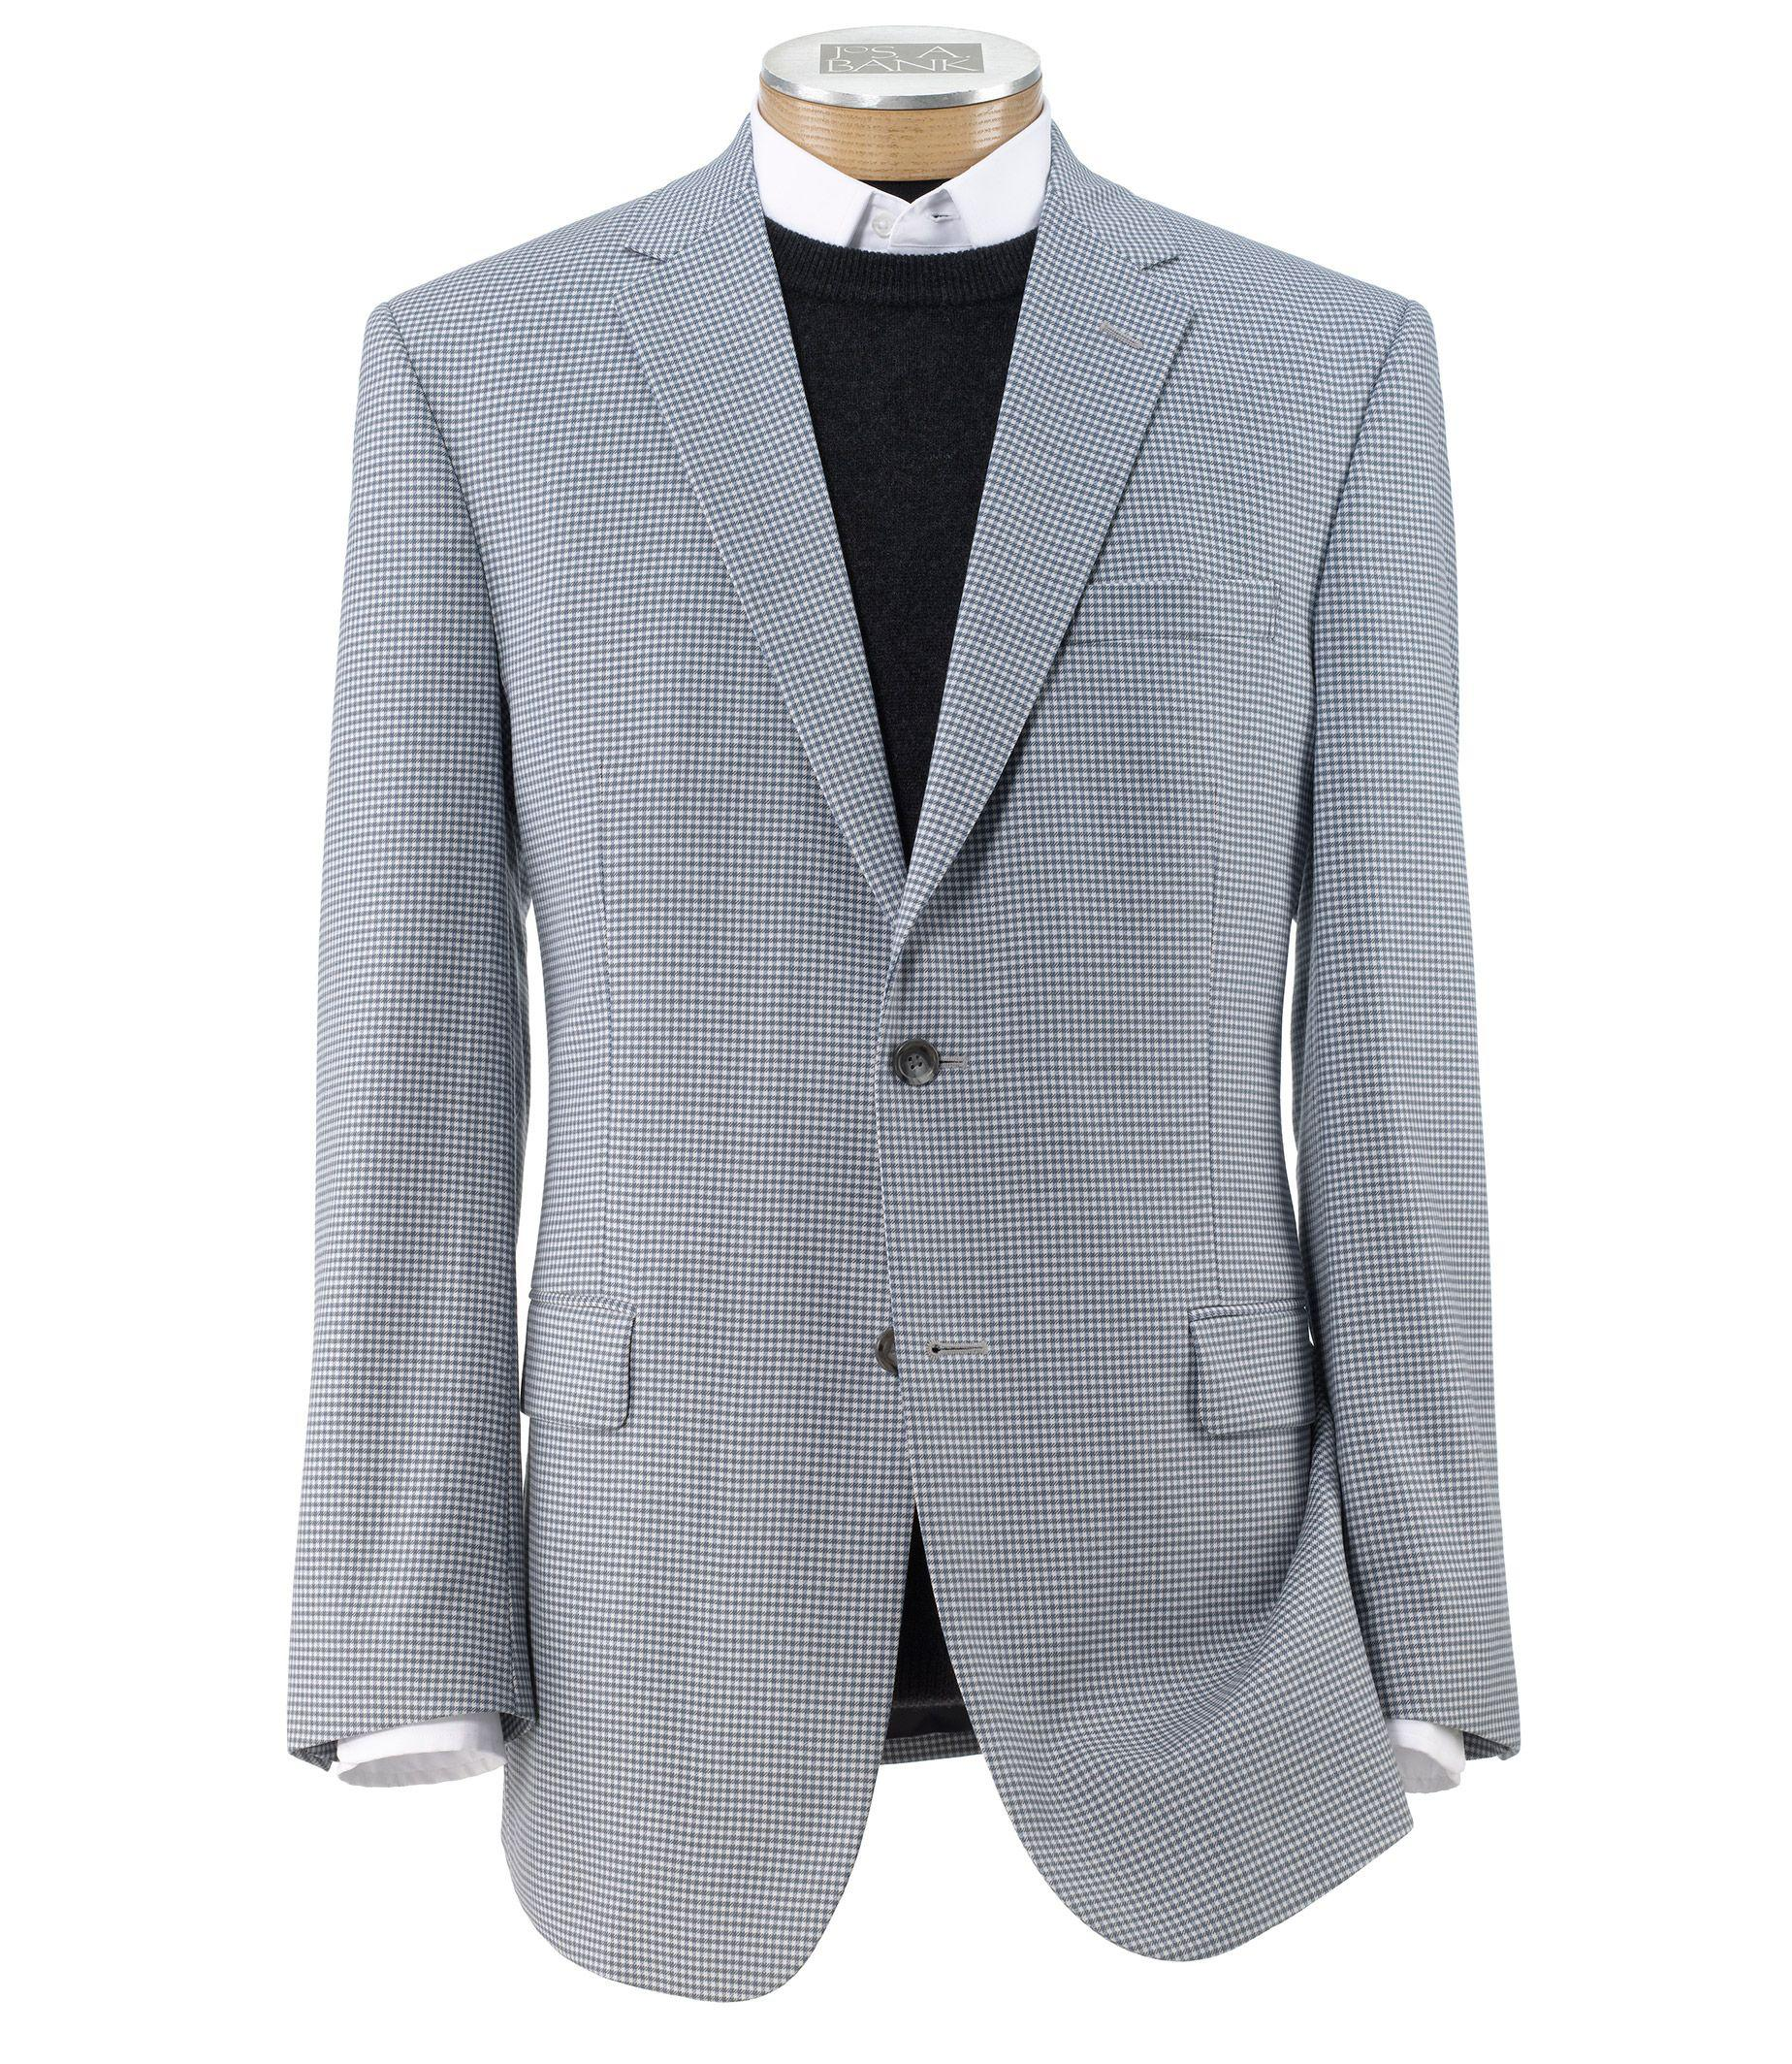 Jos. a. bank Traveler Tailored Fit 2-button Sportcoat Clearance in ...